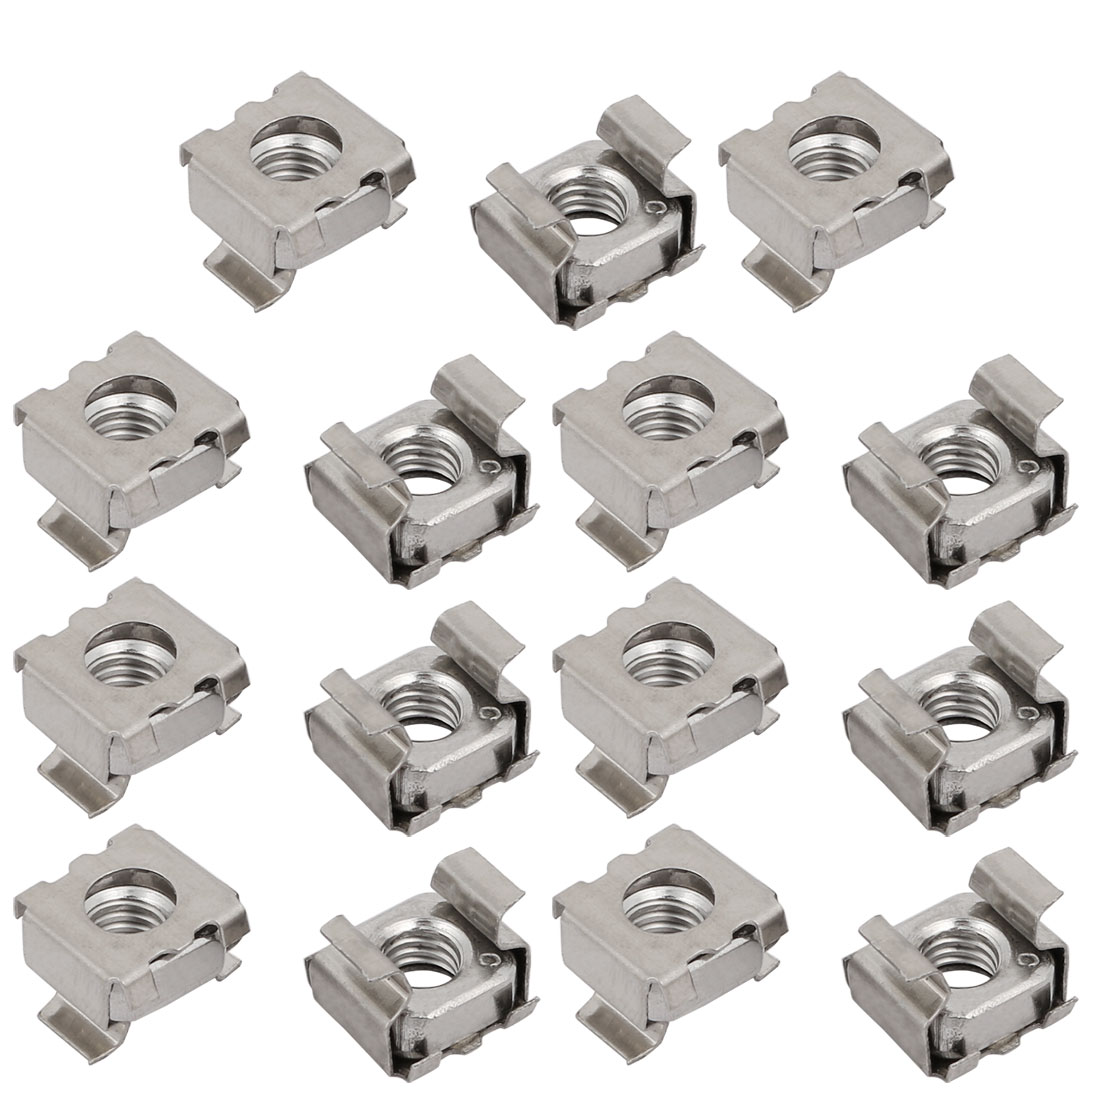 15pcs M6 304 Stainless Steel Cage Nut Silver Tone for Server Shelf Cabinet